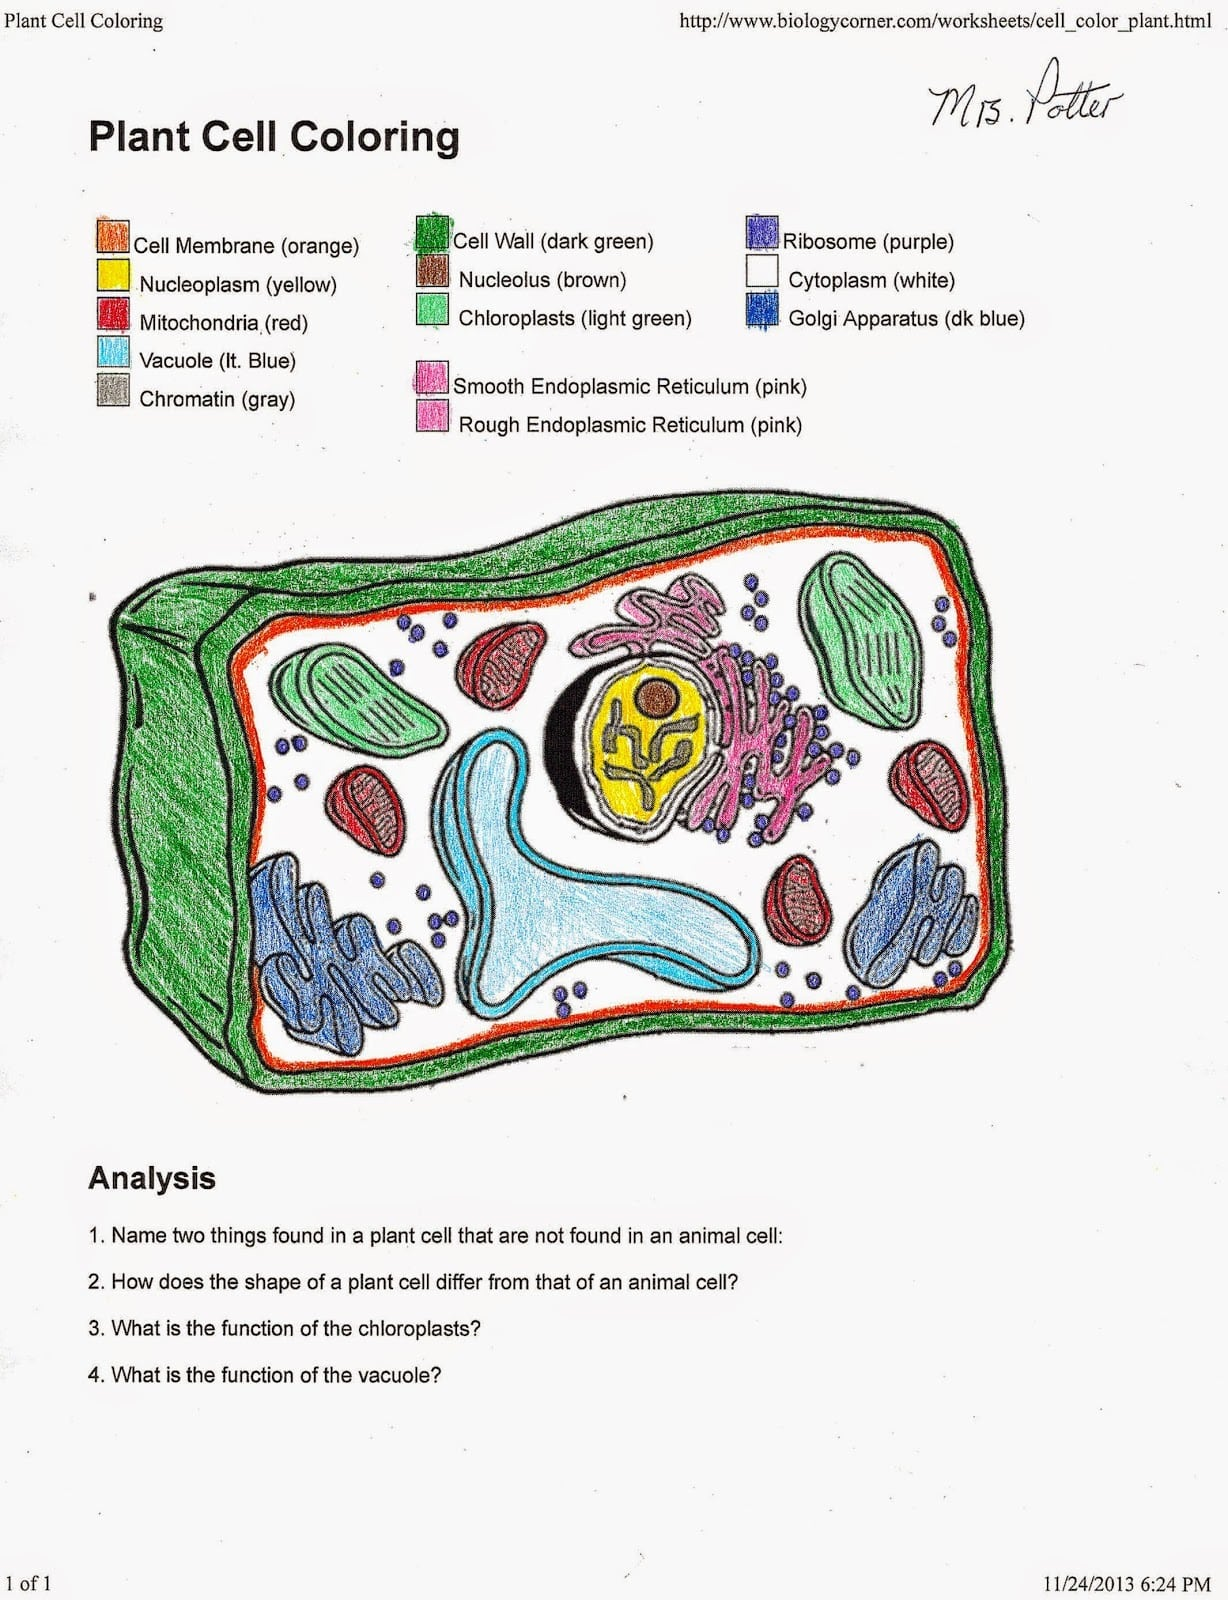 Plant Cell Coloring Page 003 To Key